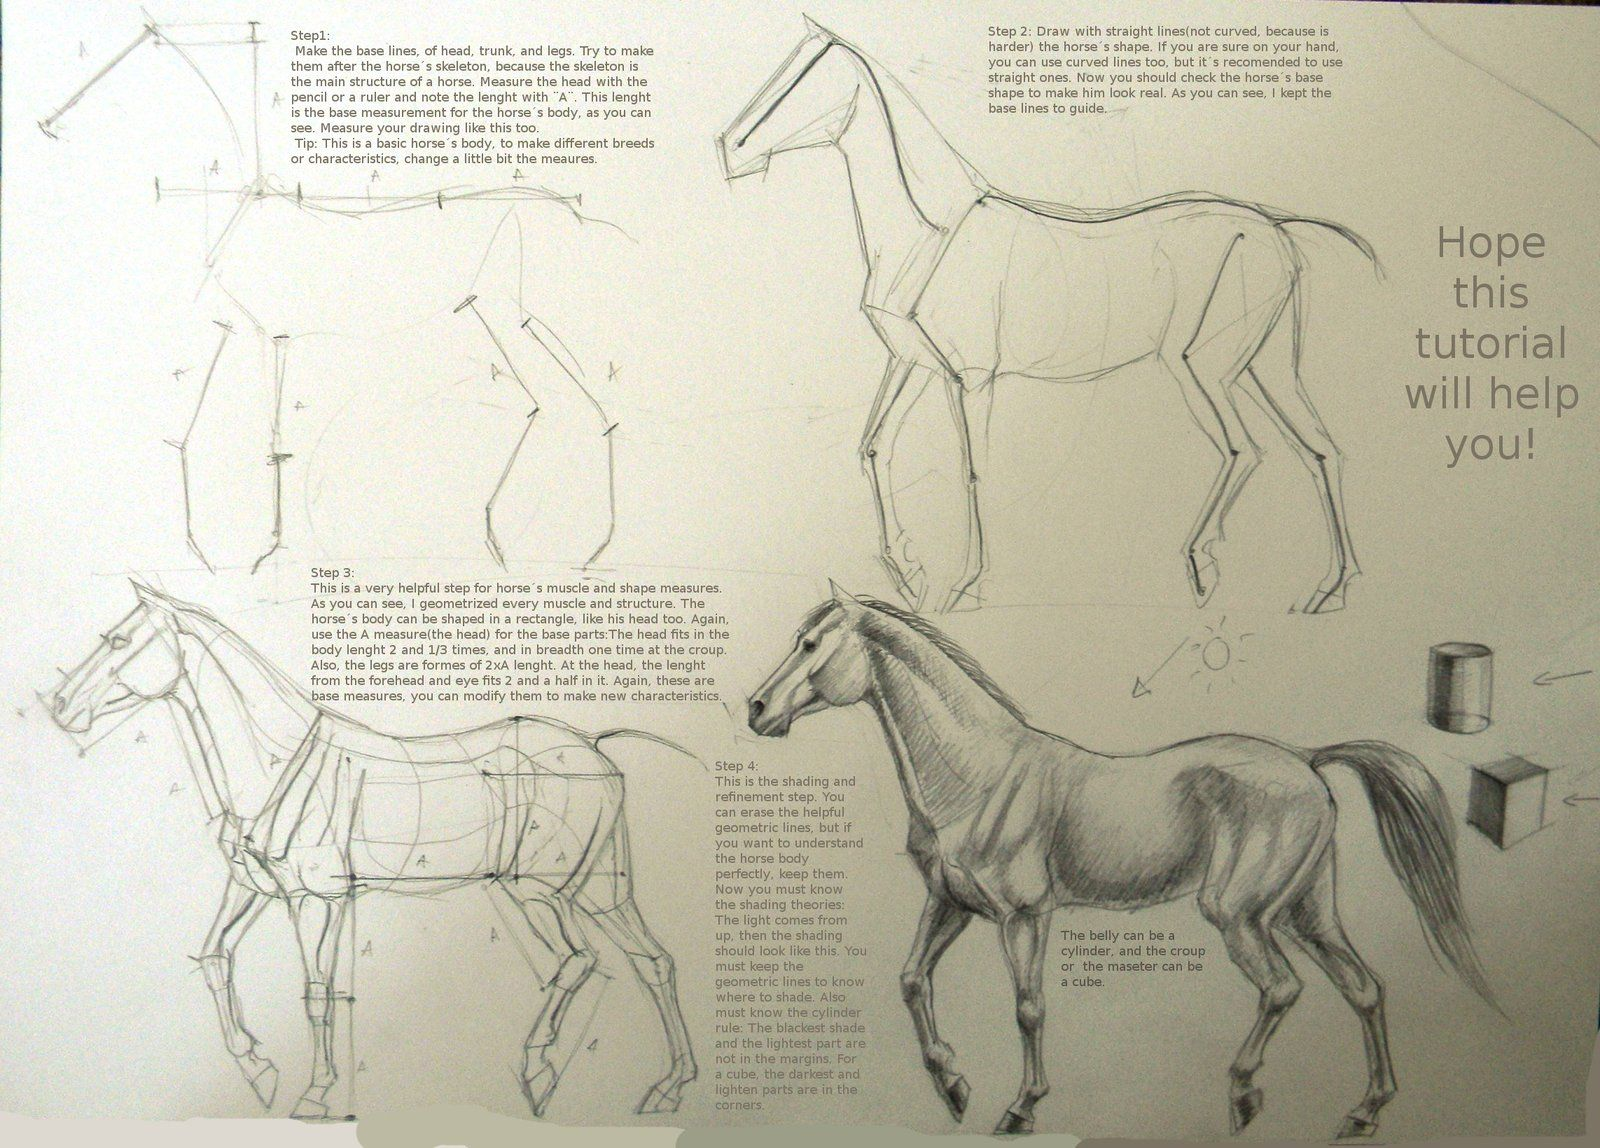 Horse drawing tutorial by winnetahiantart on deviantart horse drawing tutorial by winnetahiantart on deviantart ccuart Image collections